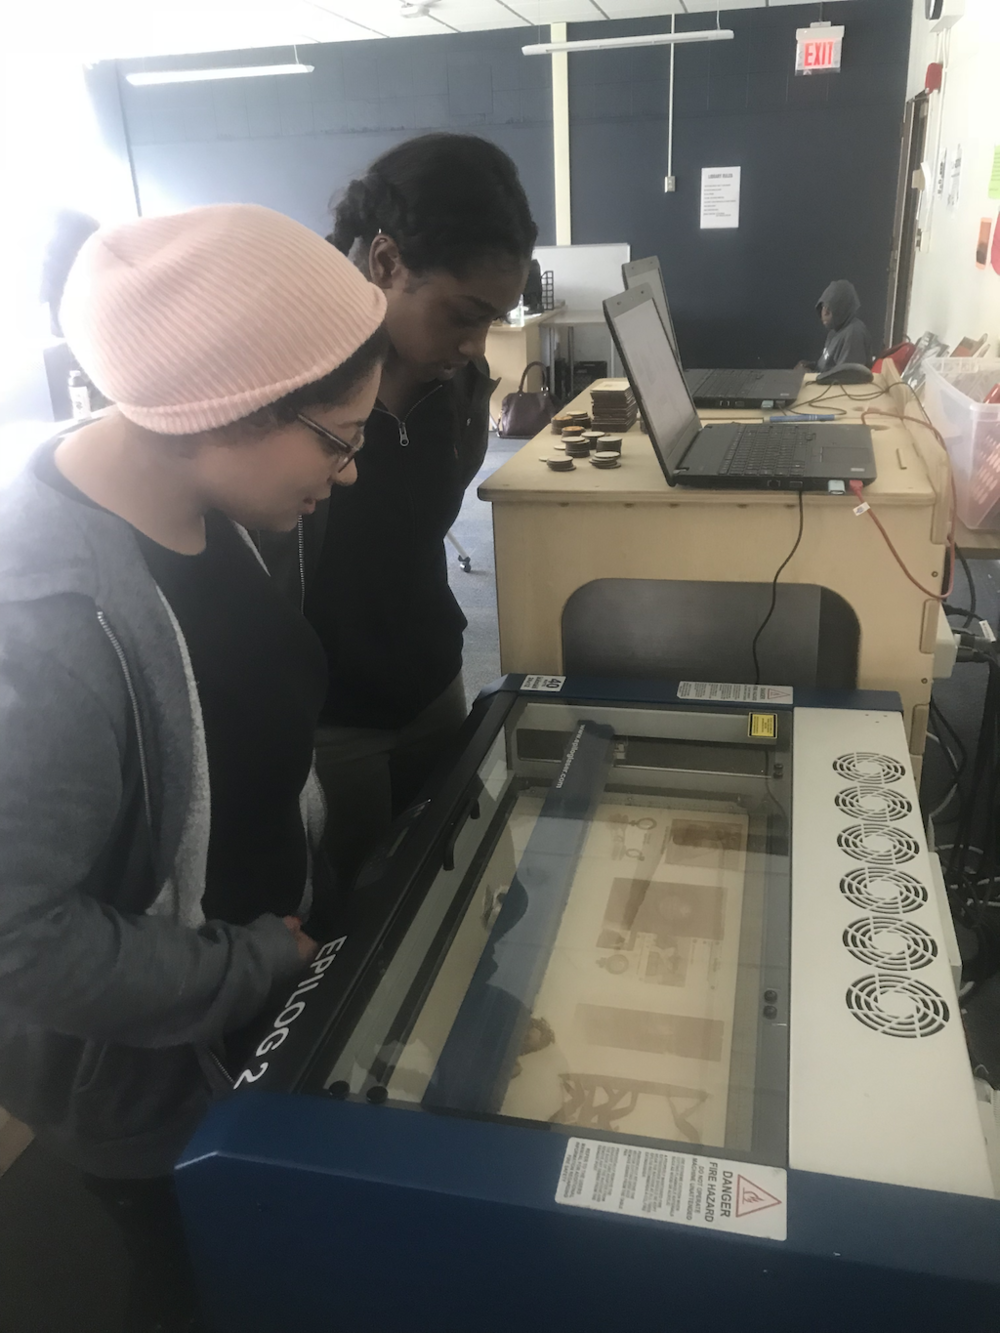 Students watching laser cutter burn their project pic. Courtesy of the author.